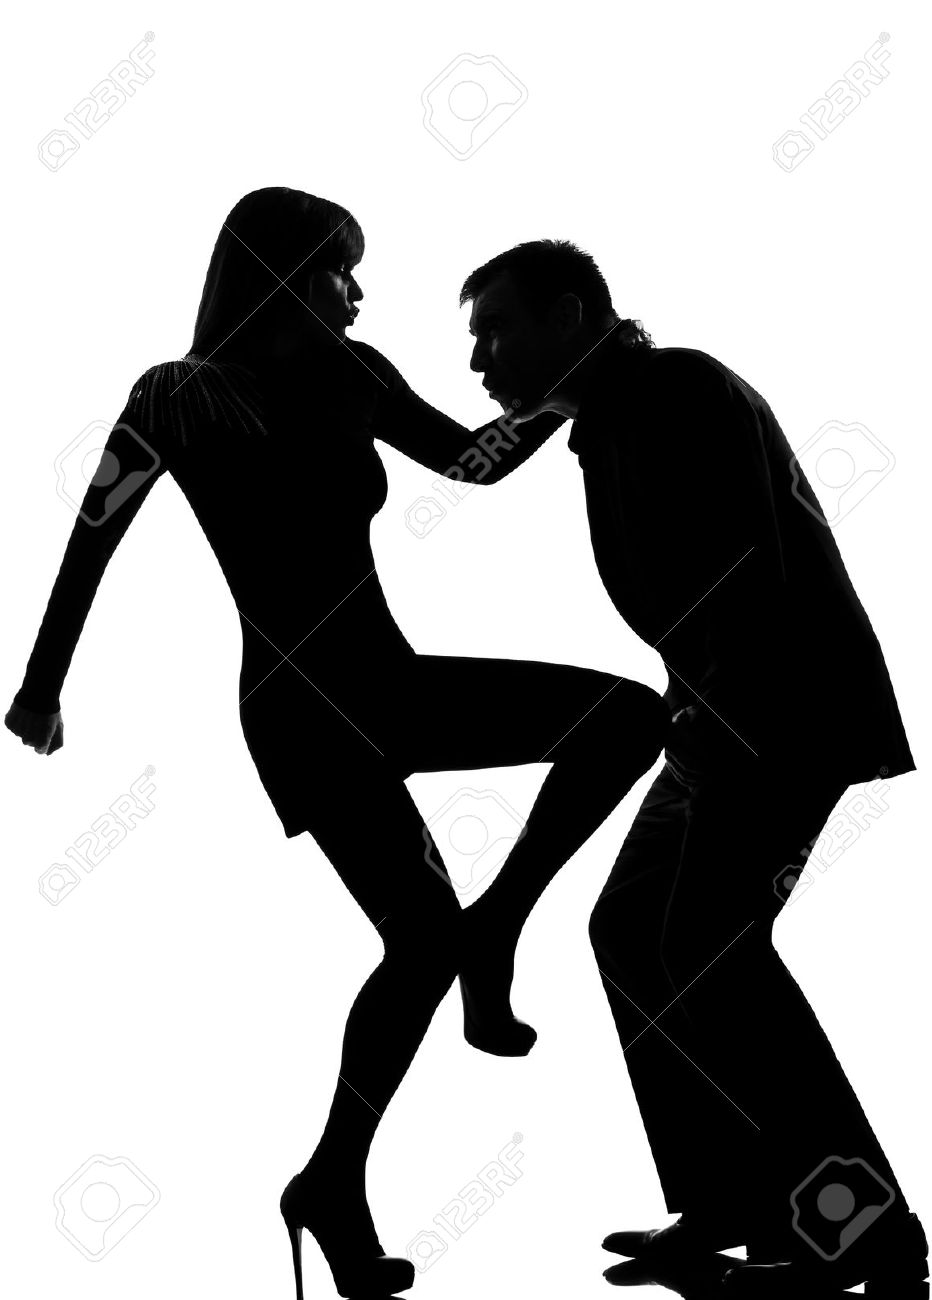 932x1300 11605348 One Caucasian Couple Man And Woman Self Defense Domestic